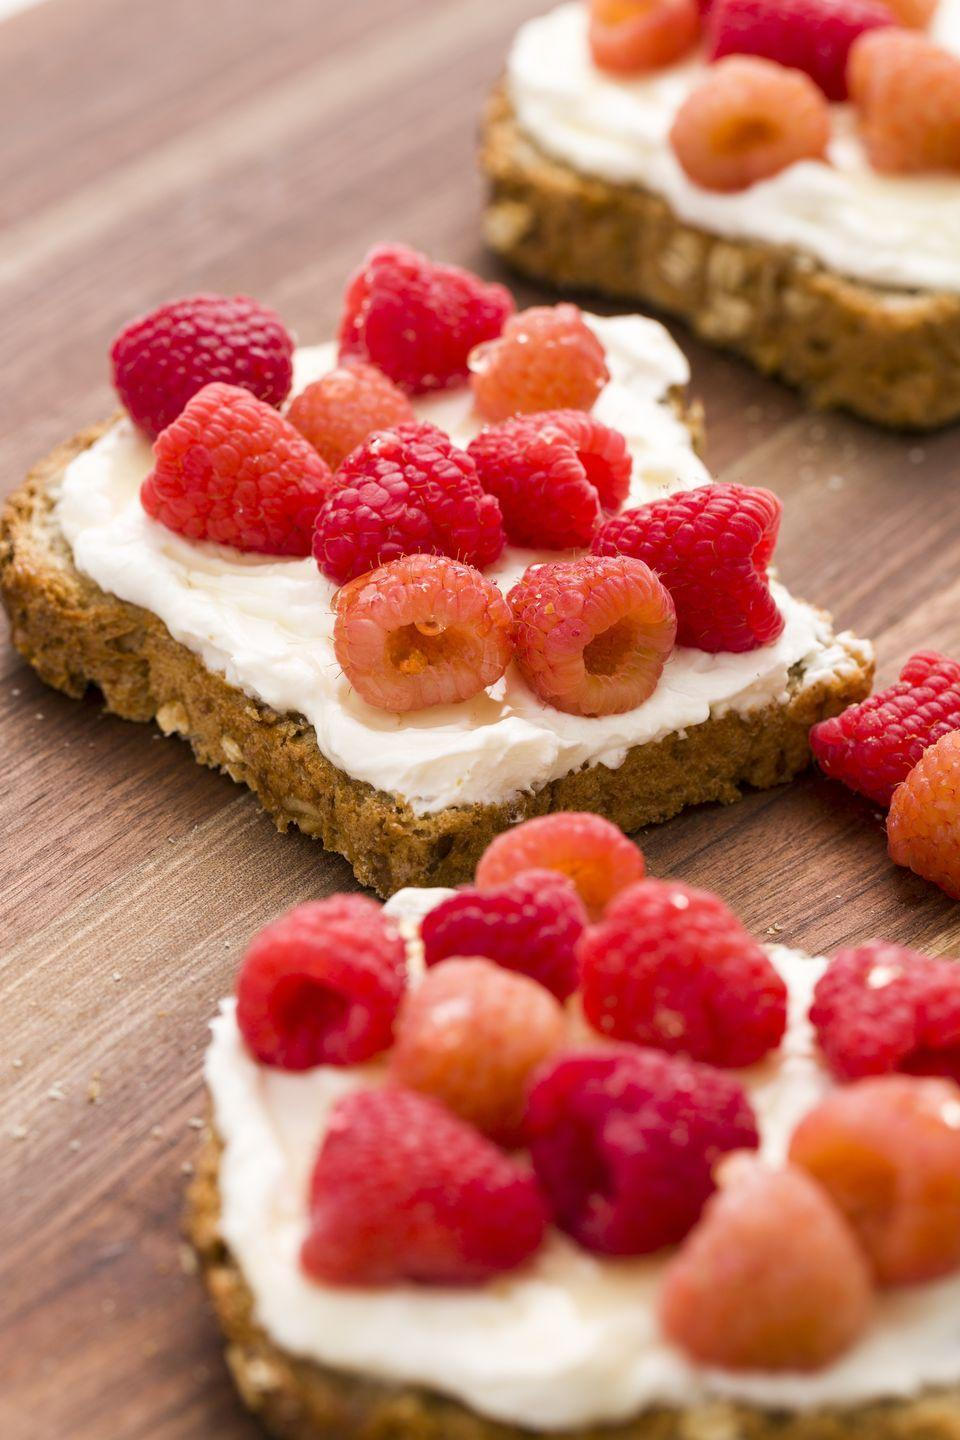 "<p>Sweetened ricotta is the perfect spread for toast. </p><p>Get the recipe from <a href=""https://www.delish.com/cooking/recipe-ideas/recipes/a45367/ricotta-honey-toast-with-berries-recipe/"" rel=""nofollow noopener"" target=""_blank"" data-ylk=""slk:Delish"" class=""link rapid-noclick-resp"">Delish</a>. </p>"